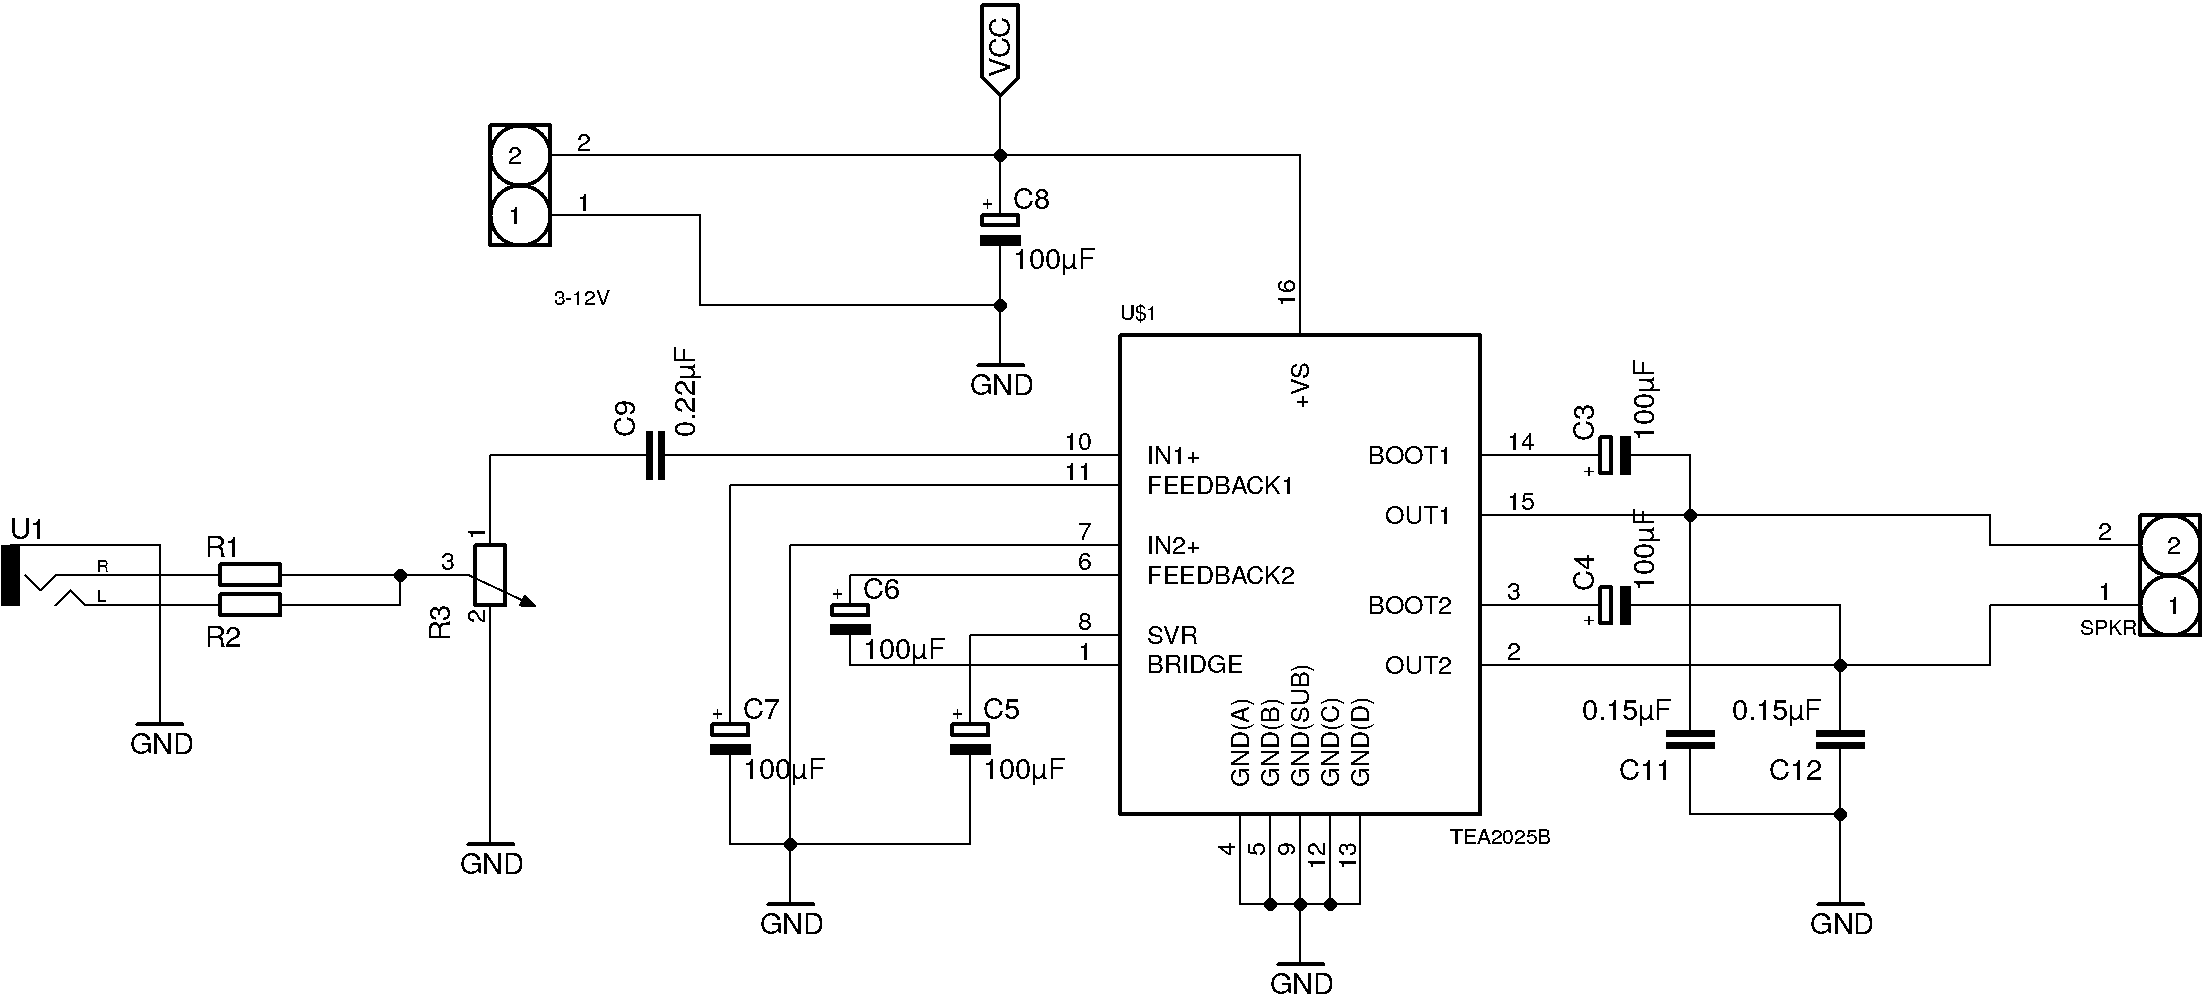 Mono Amp Wiring Diagram 23 Images Diagrams Rockford Fosgate Punch Amplifier Circuit Tea2025 This Is Super Easy To Build